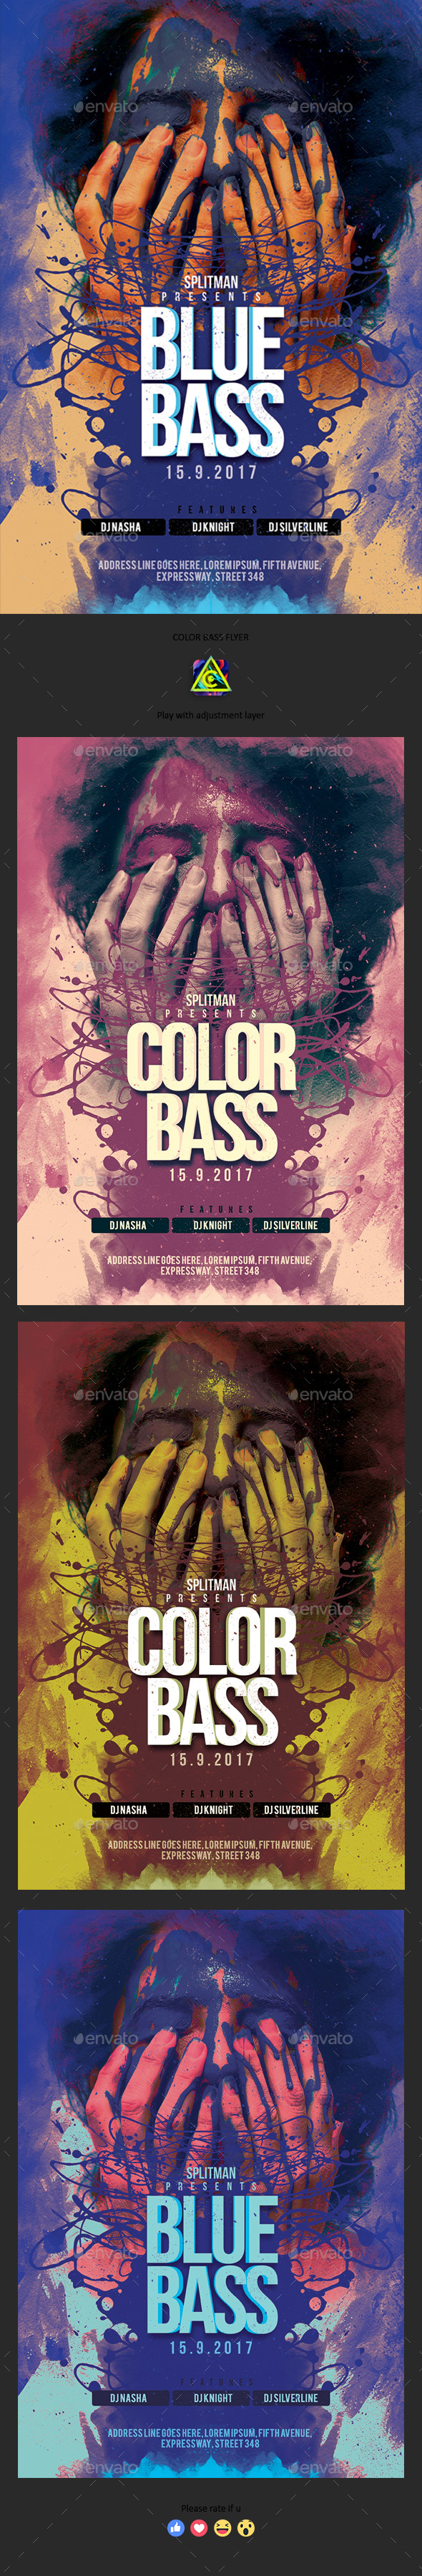 Color Bass Flyer - Clubs & Parties Events